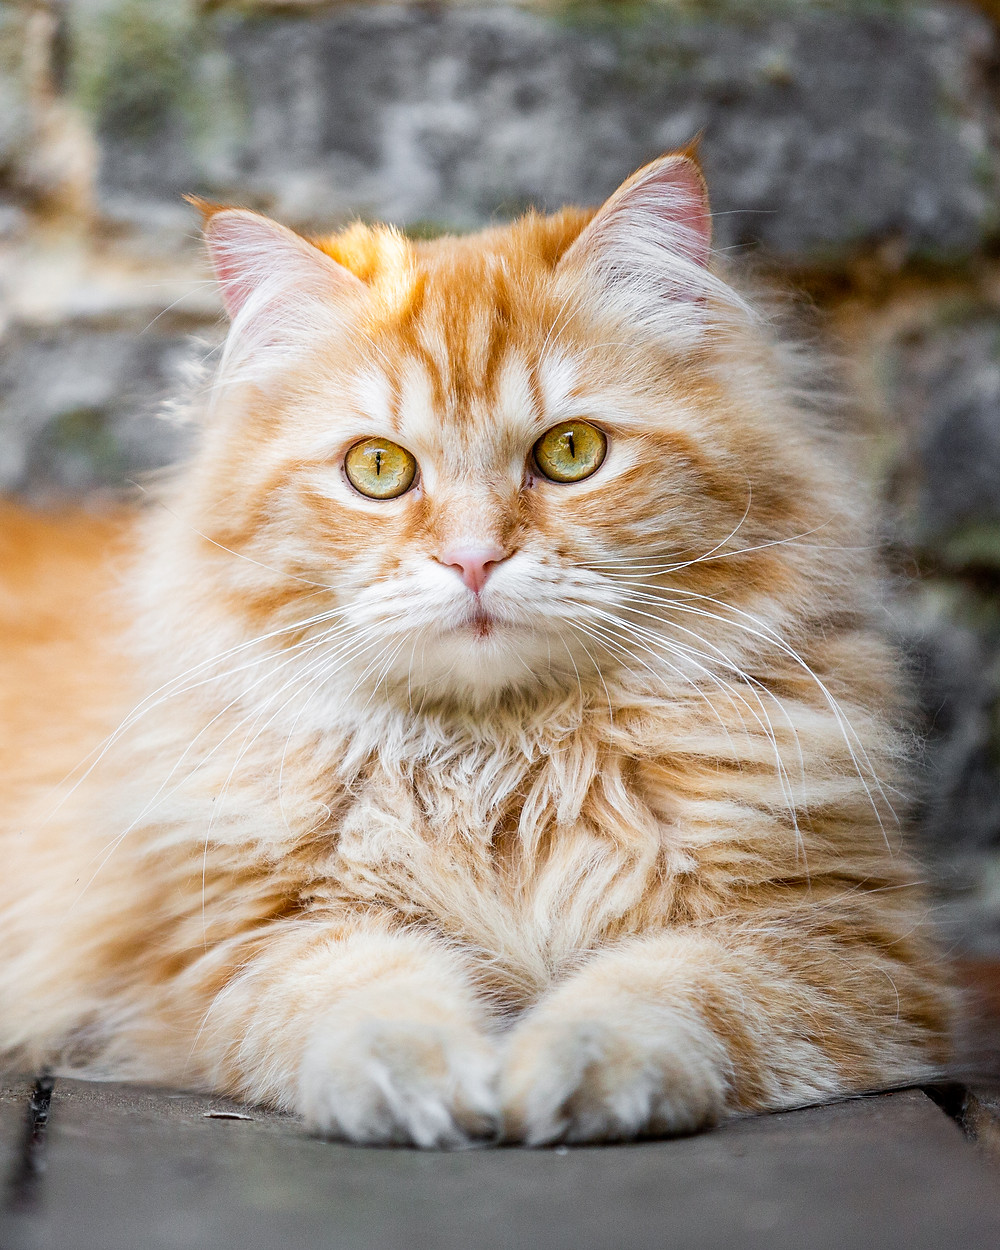 Cat photography in London. A beautiful ginger cat looking into the camera